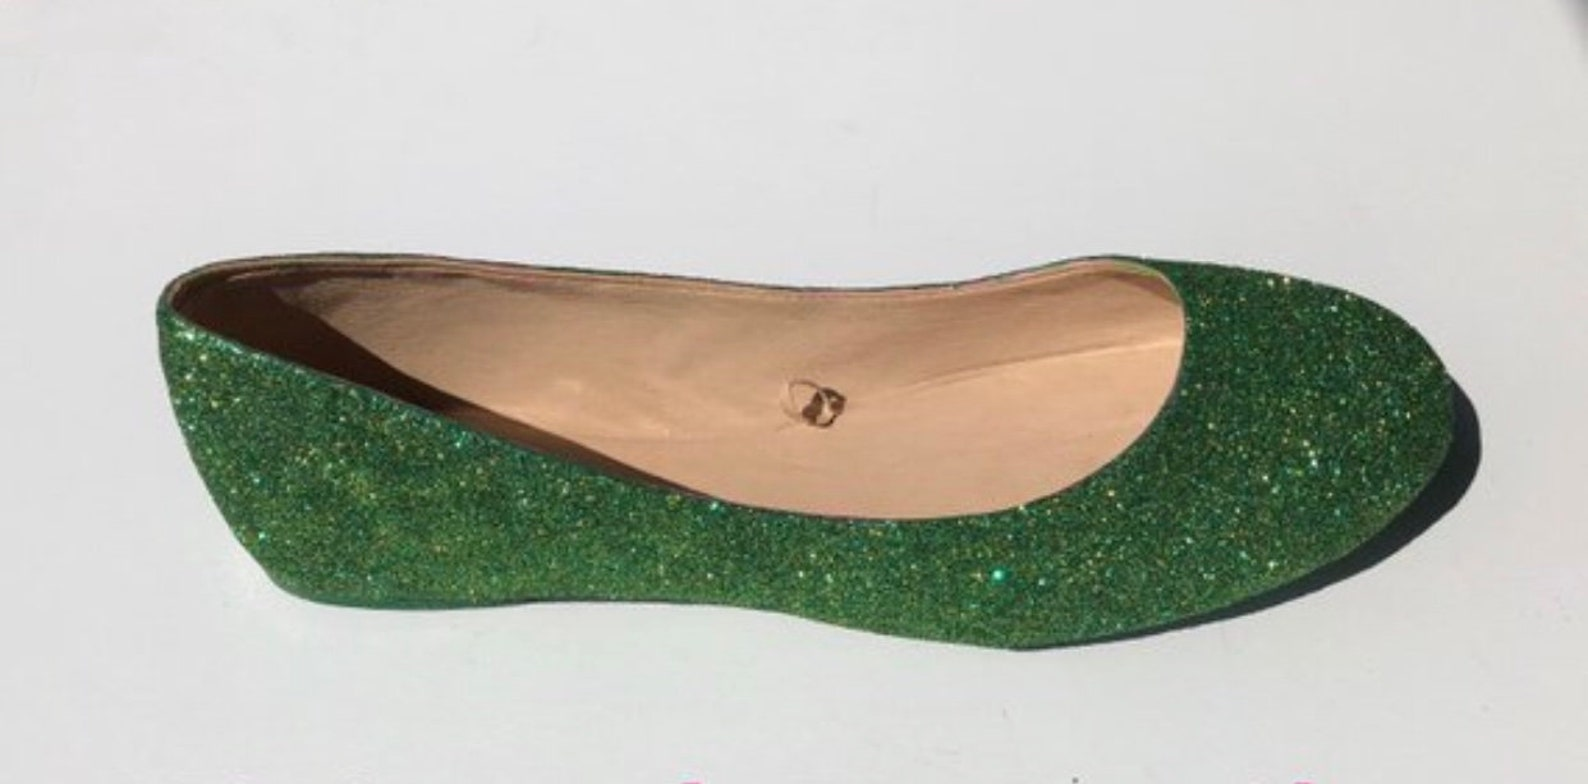 bridal flat emerald green & gold glittered ballet flats *free u.s shipping* jcodanseur shoes